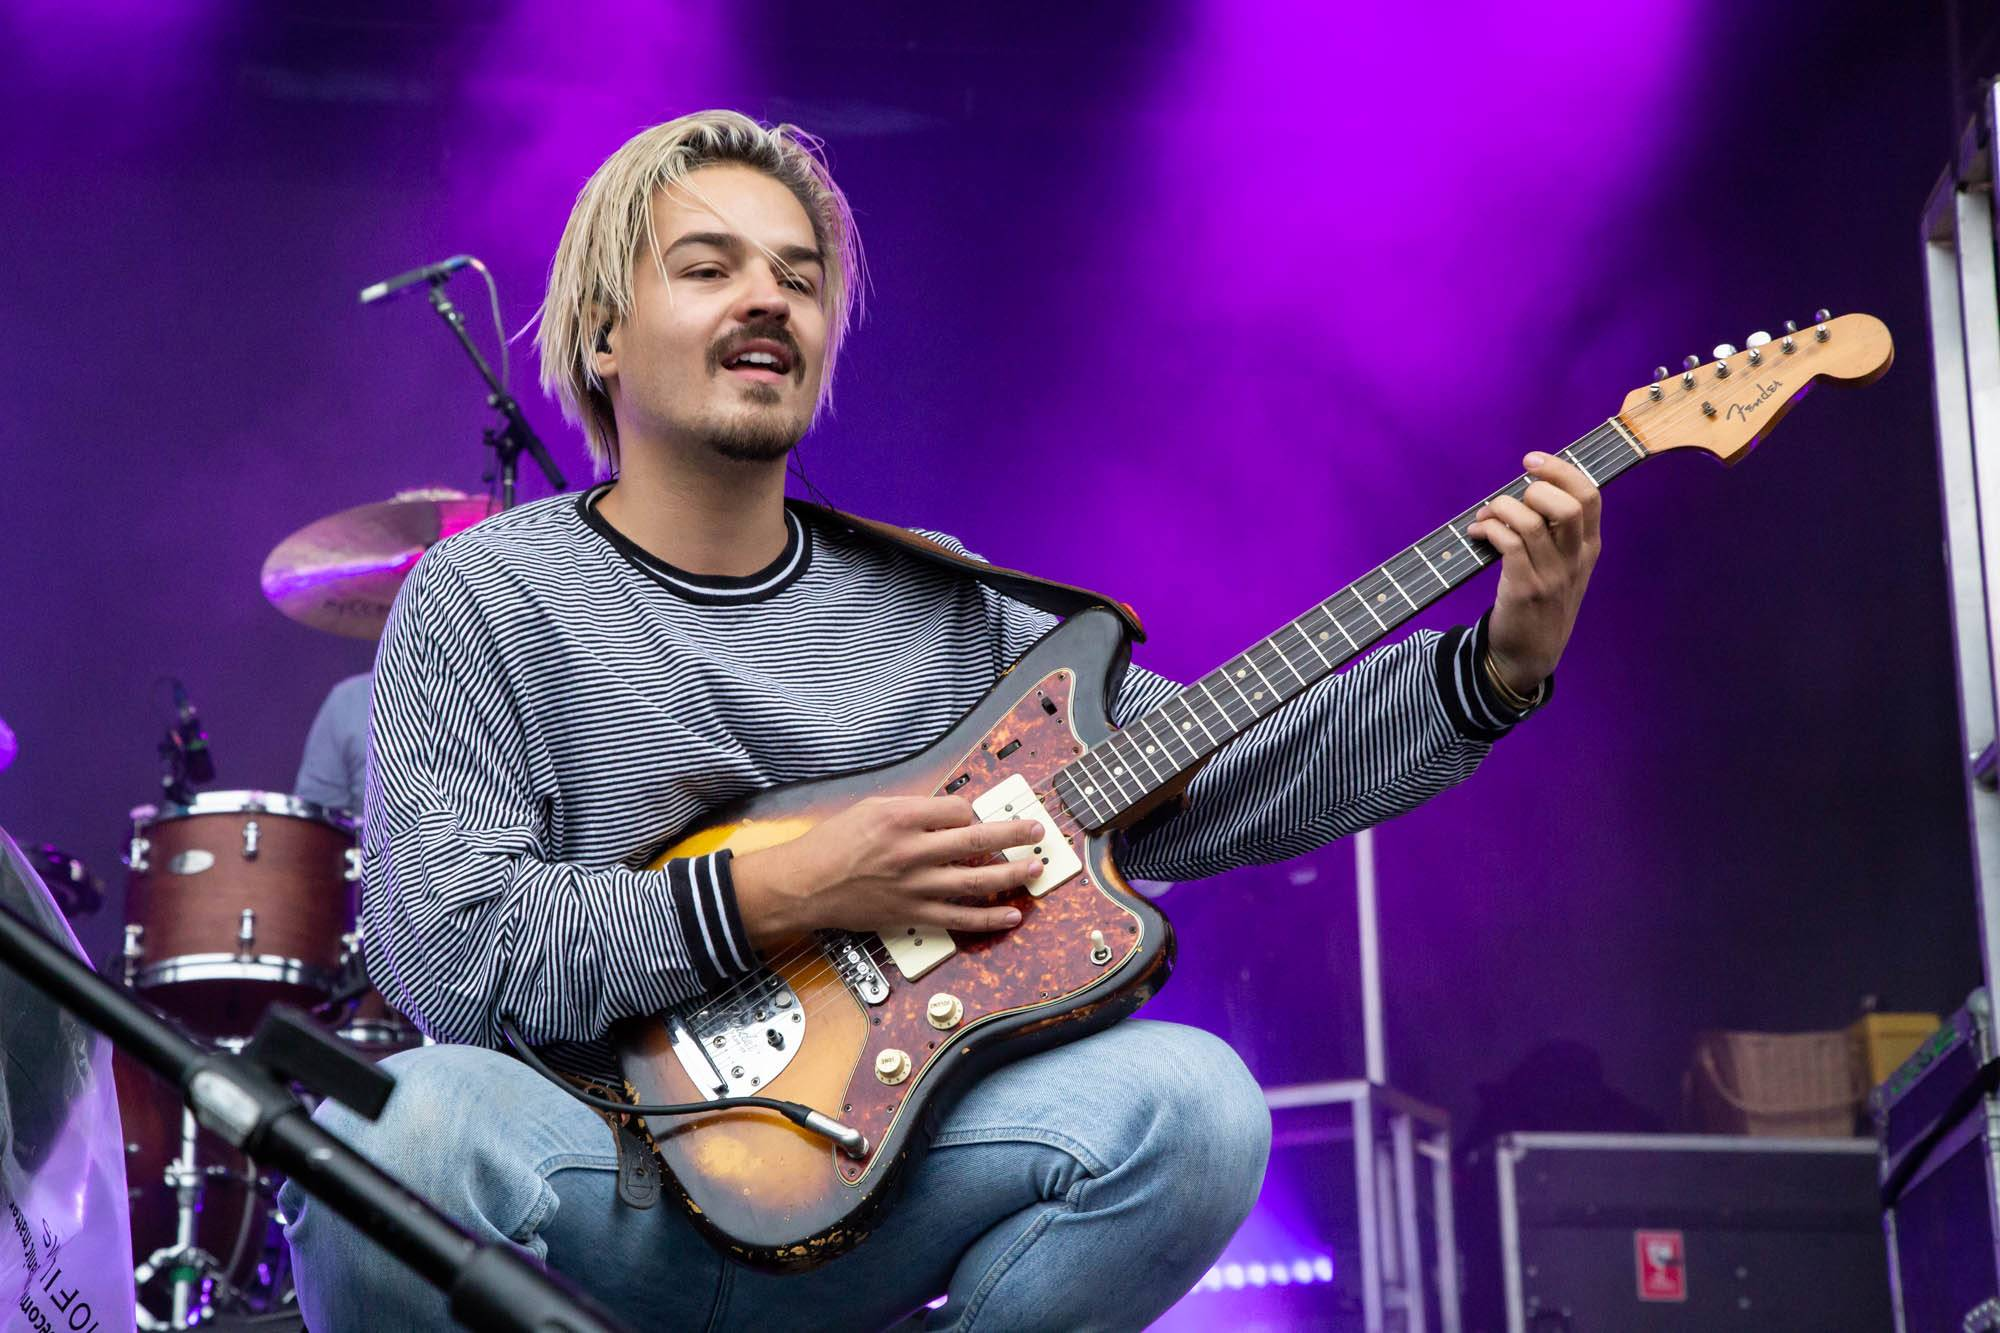 Milky Chance at Skookum Festival, Vancouver, Sep 8 2018. Kirk Chantraine photo.